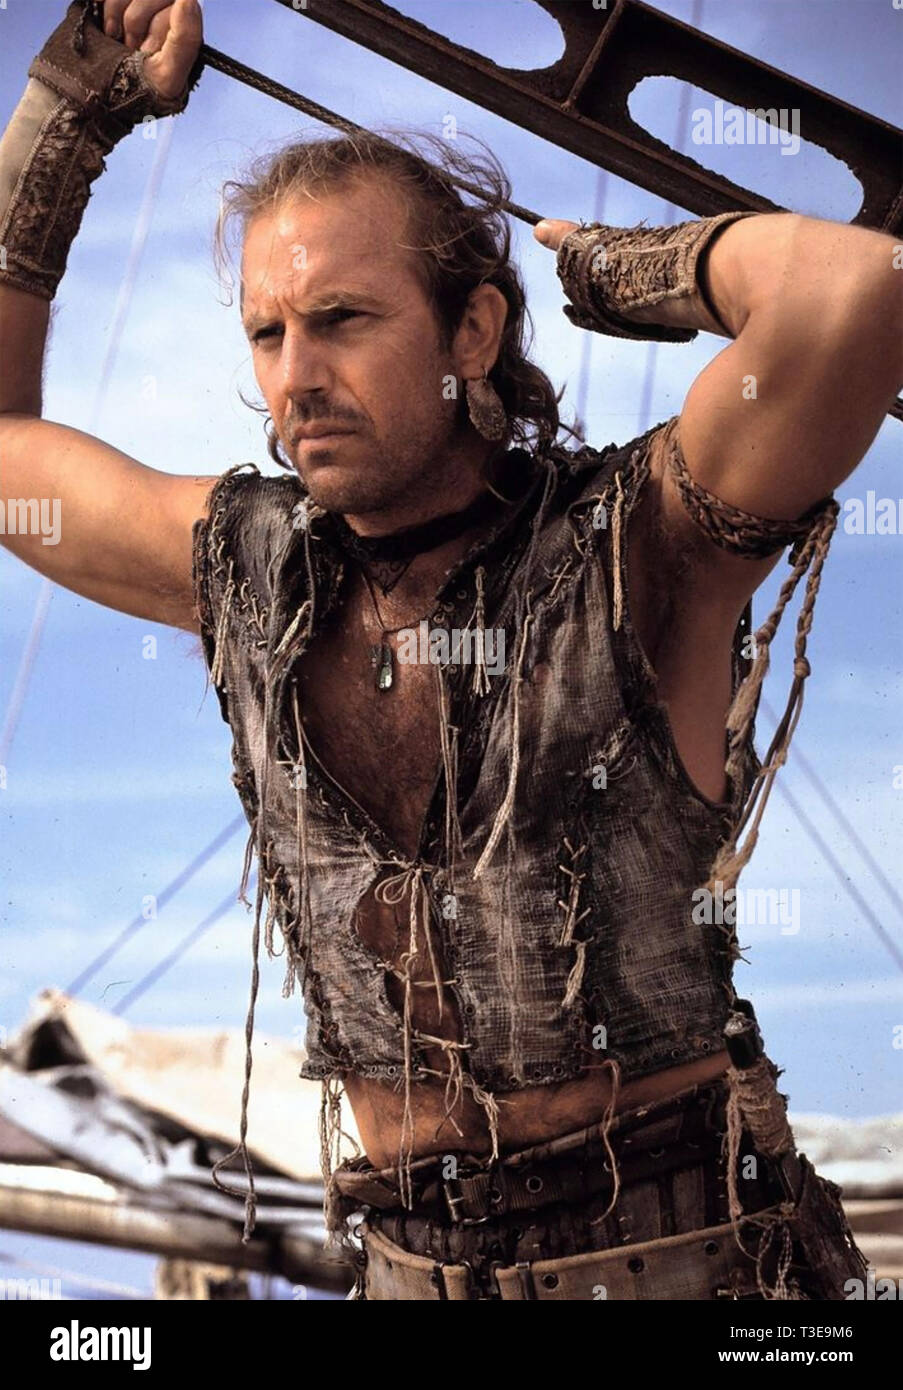 WATERWORLD 1995 Universal Pictures film with Kevin Costner - Stock Image